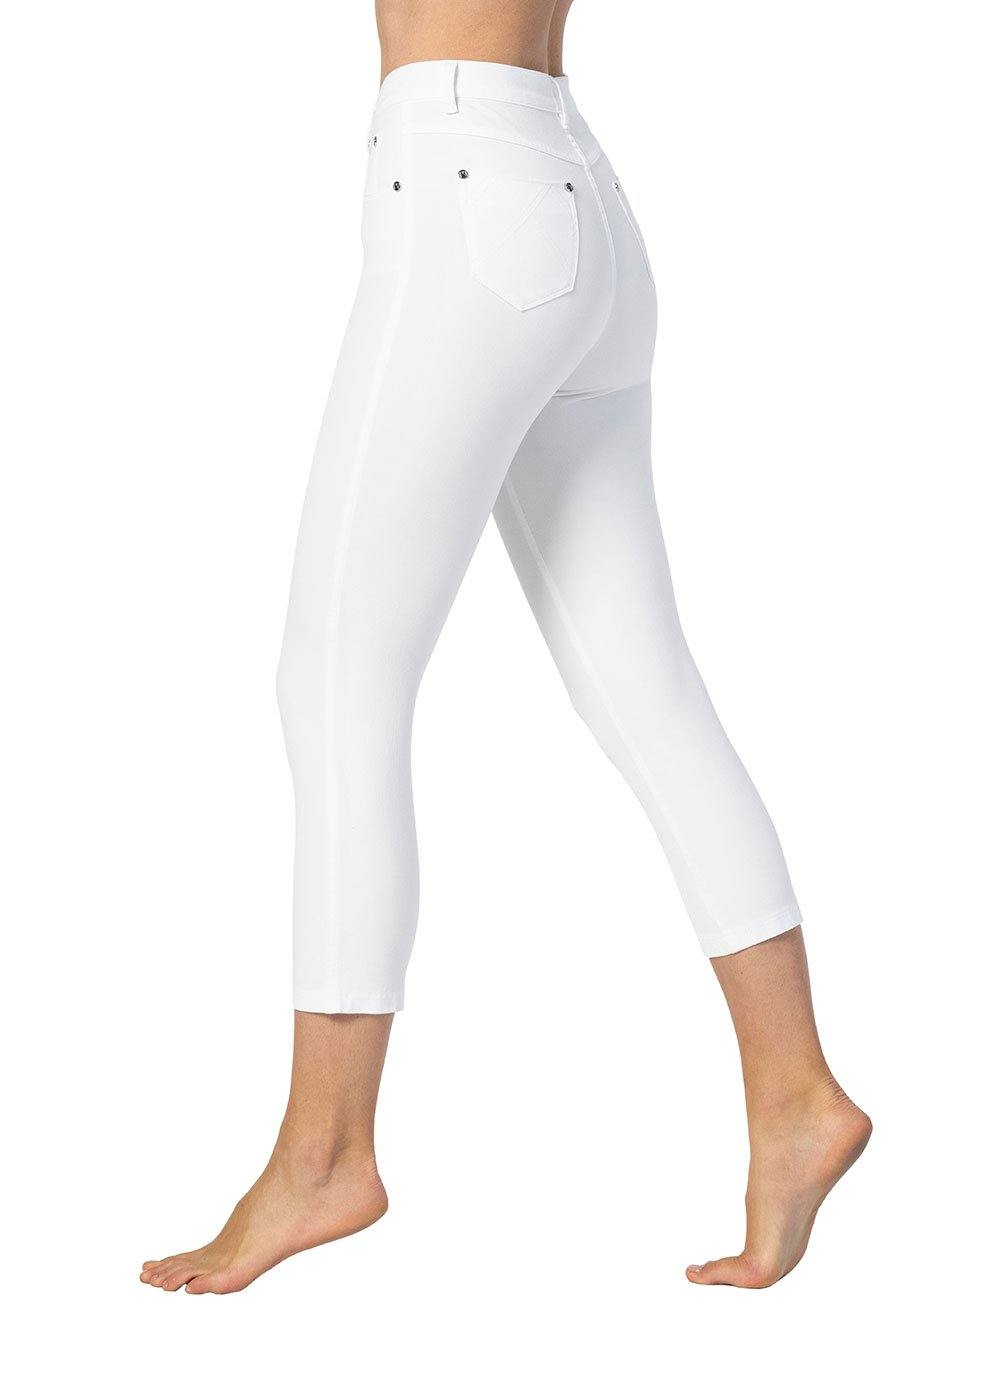 Marble High-Waisted 4-Way Stretch Slim Jeans